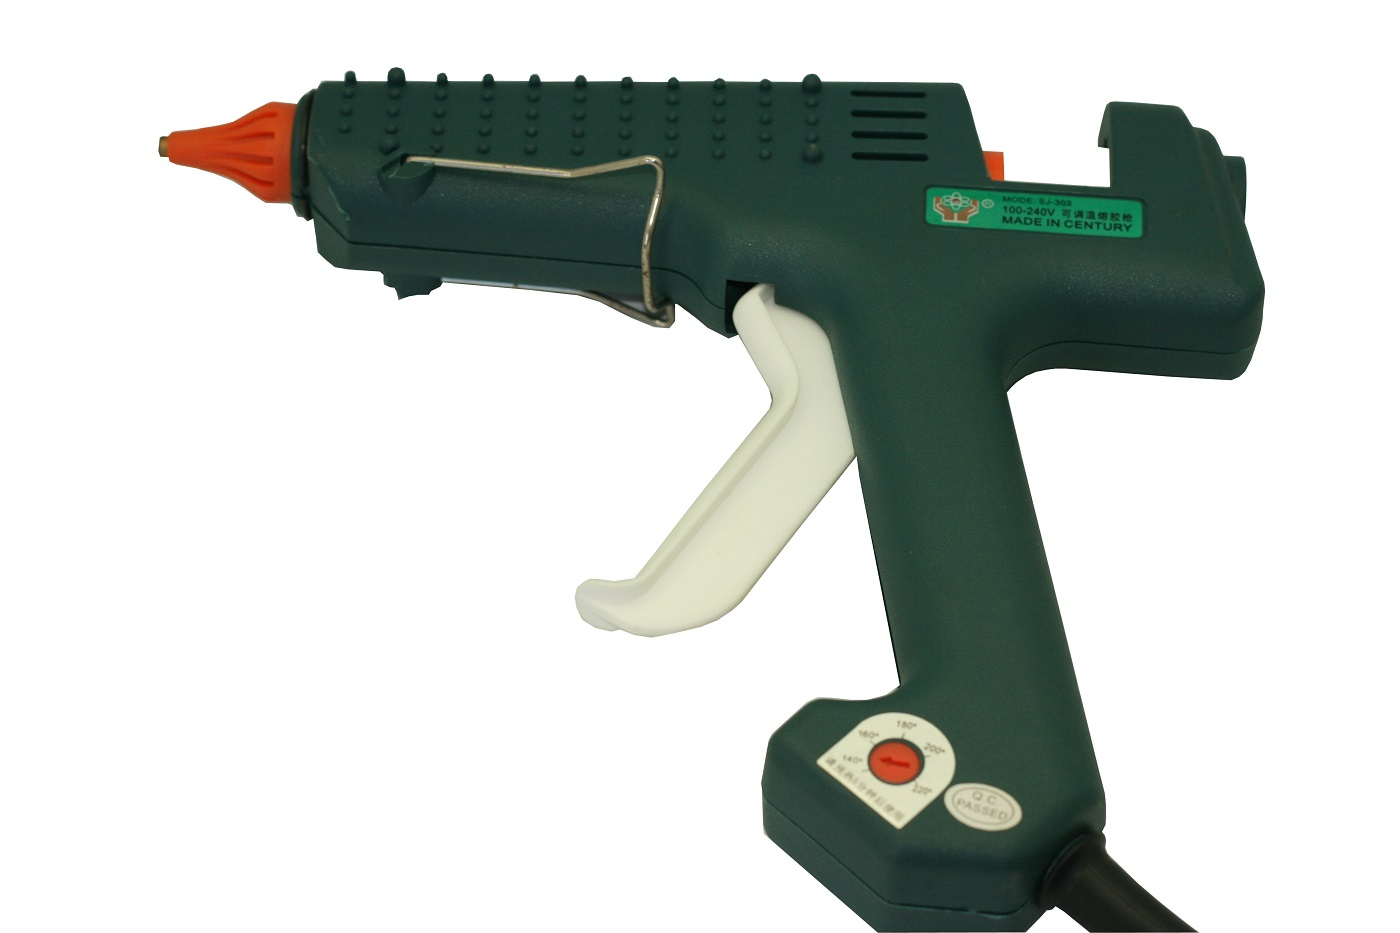 Hot Glue Gun 200w-300w